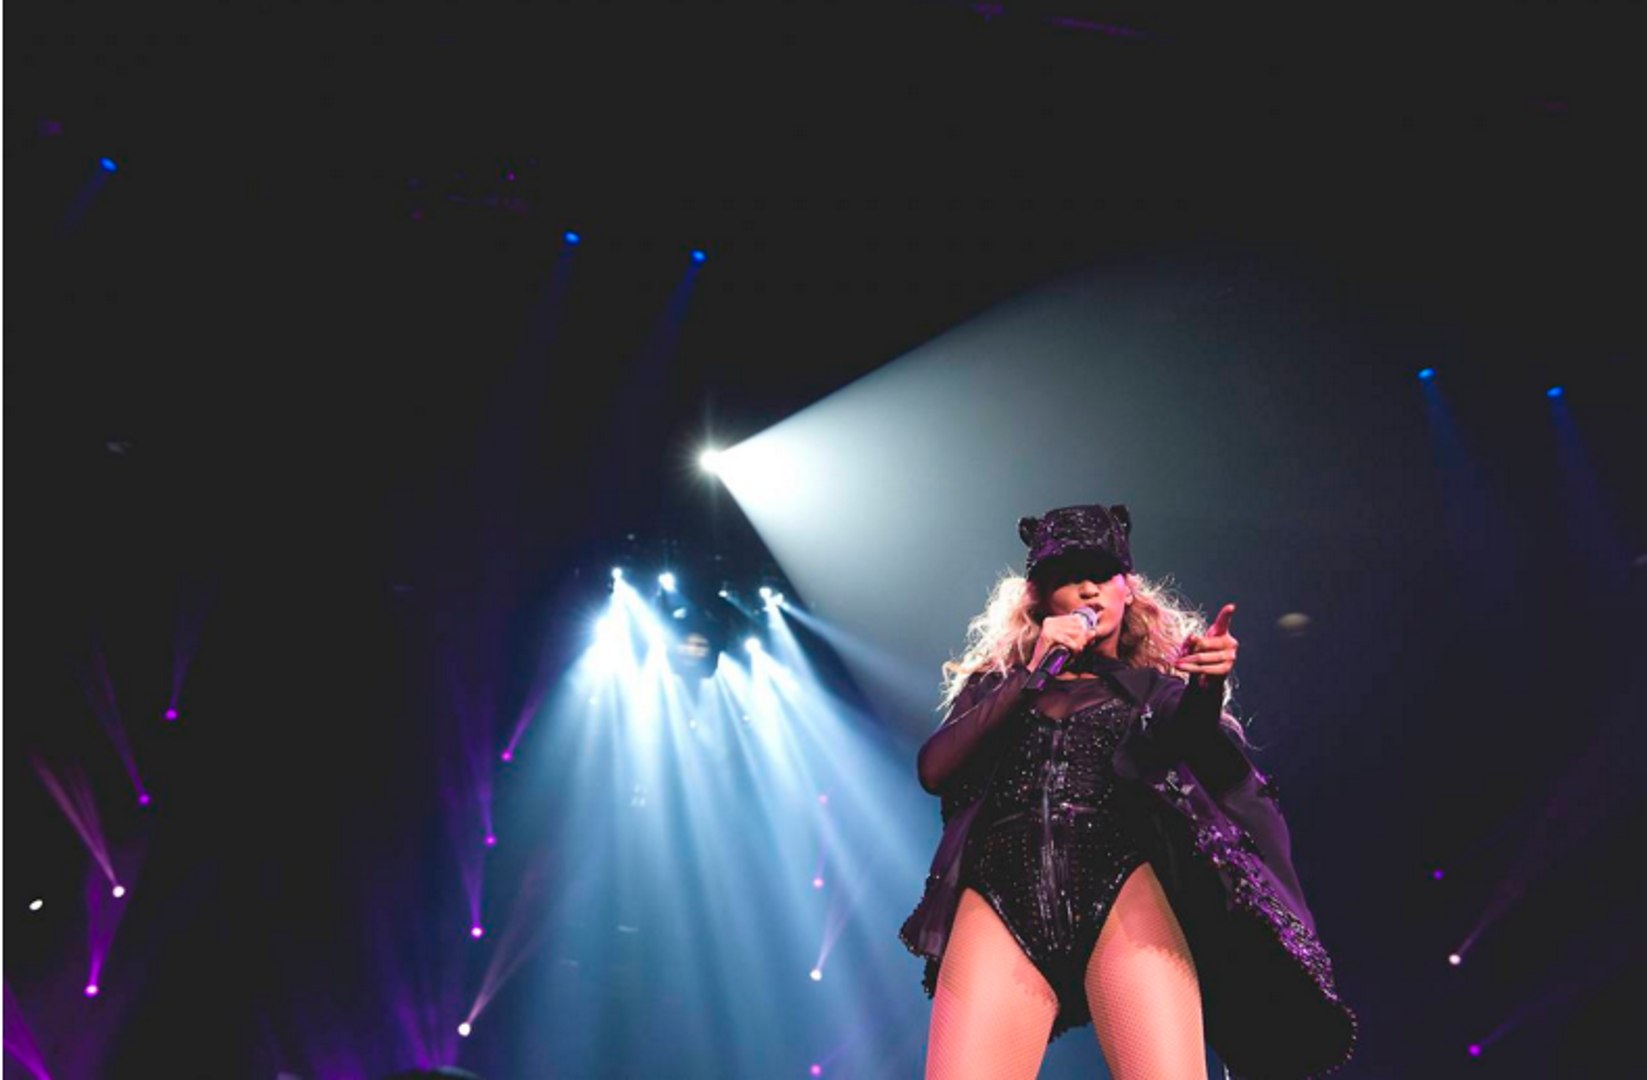 Beyonce - If I Were A Boy/Bittersweet Simphony (Live) (The Mrs Carter Show World Tour - Rock In Rio